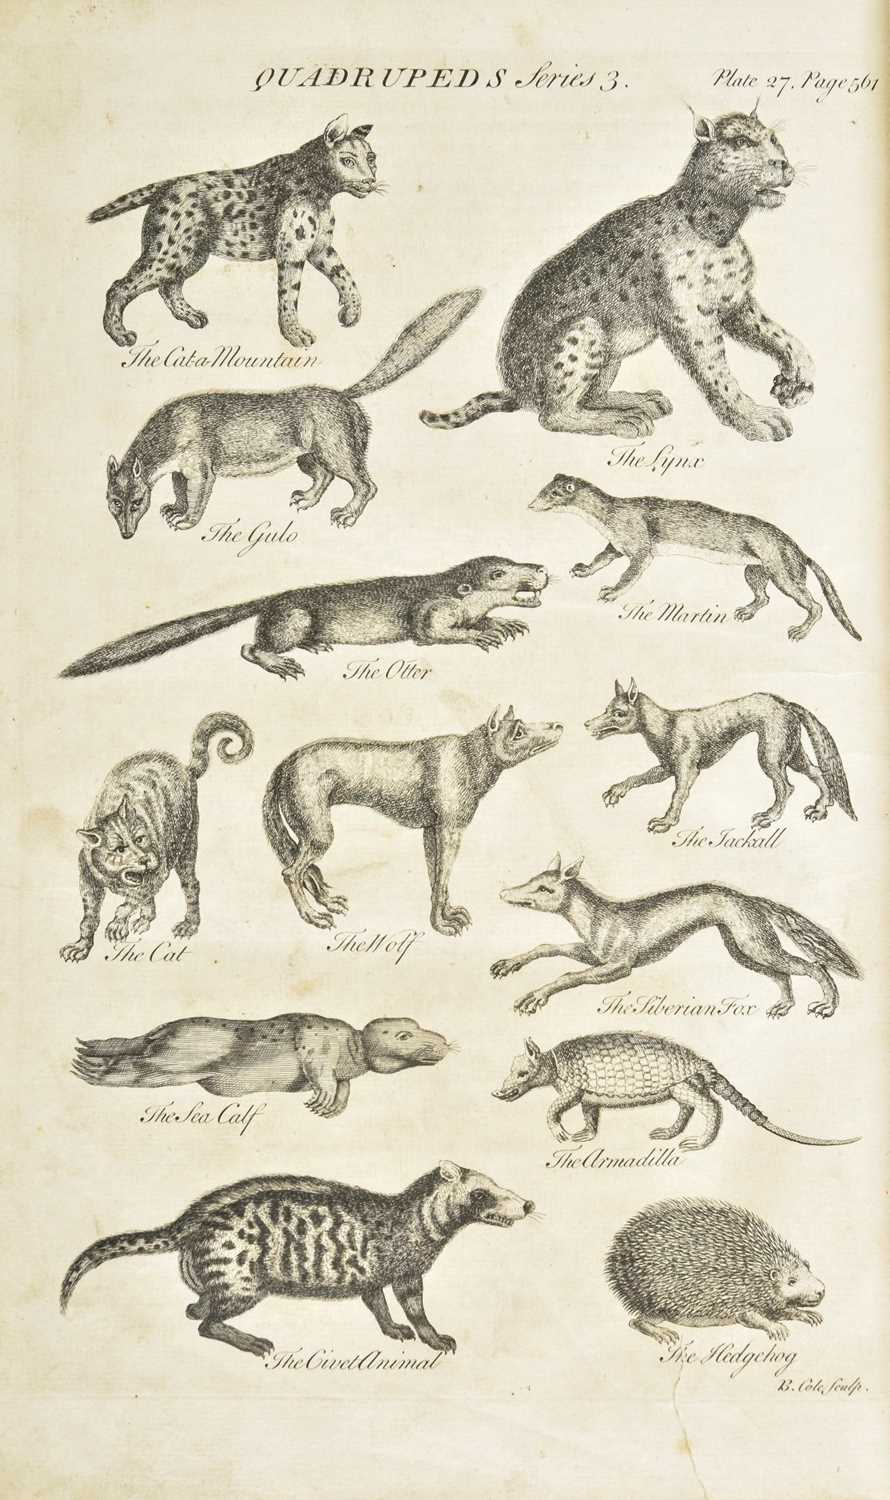 Lot 240-Hill (John). An History of Animals, 1st edition, 1752